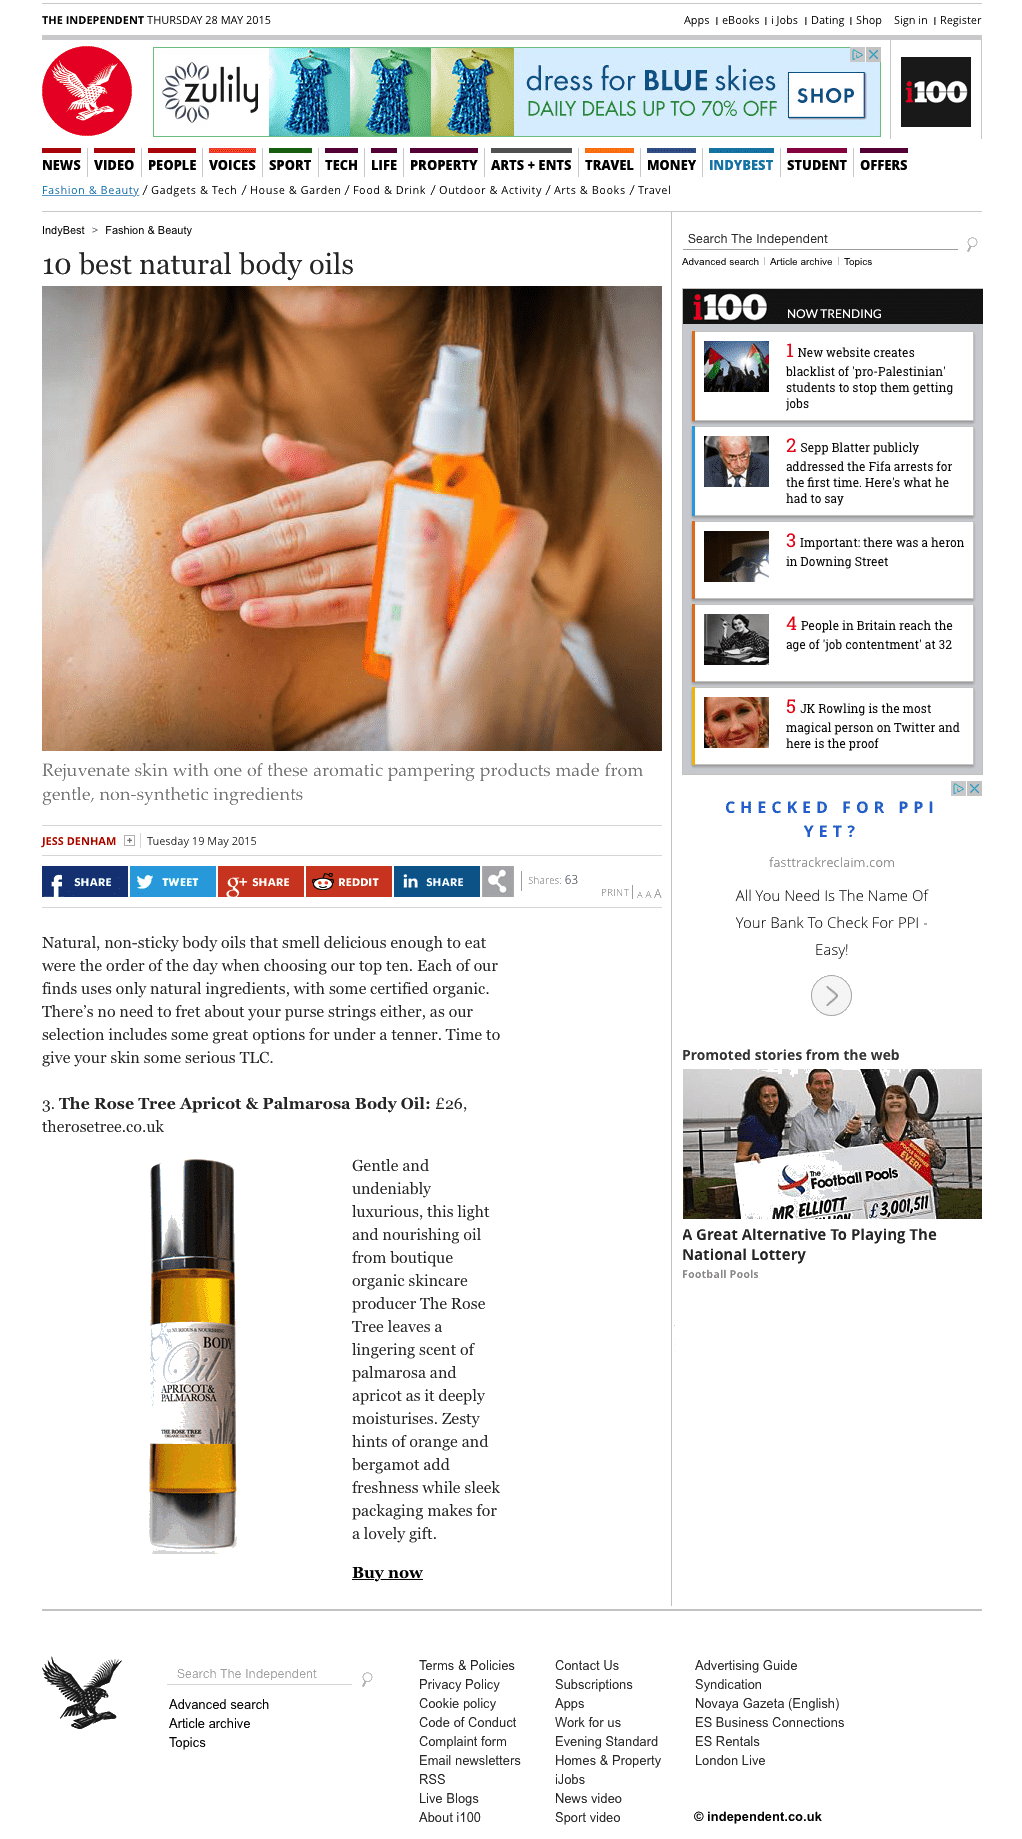 The Independent - 10 Best Natural Body Oils